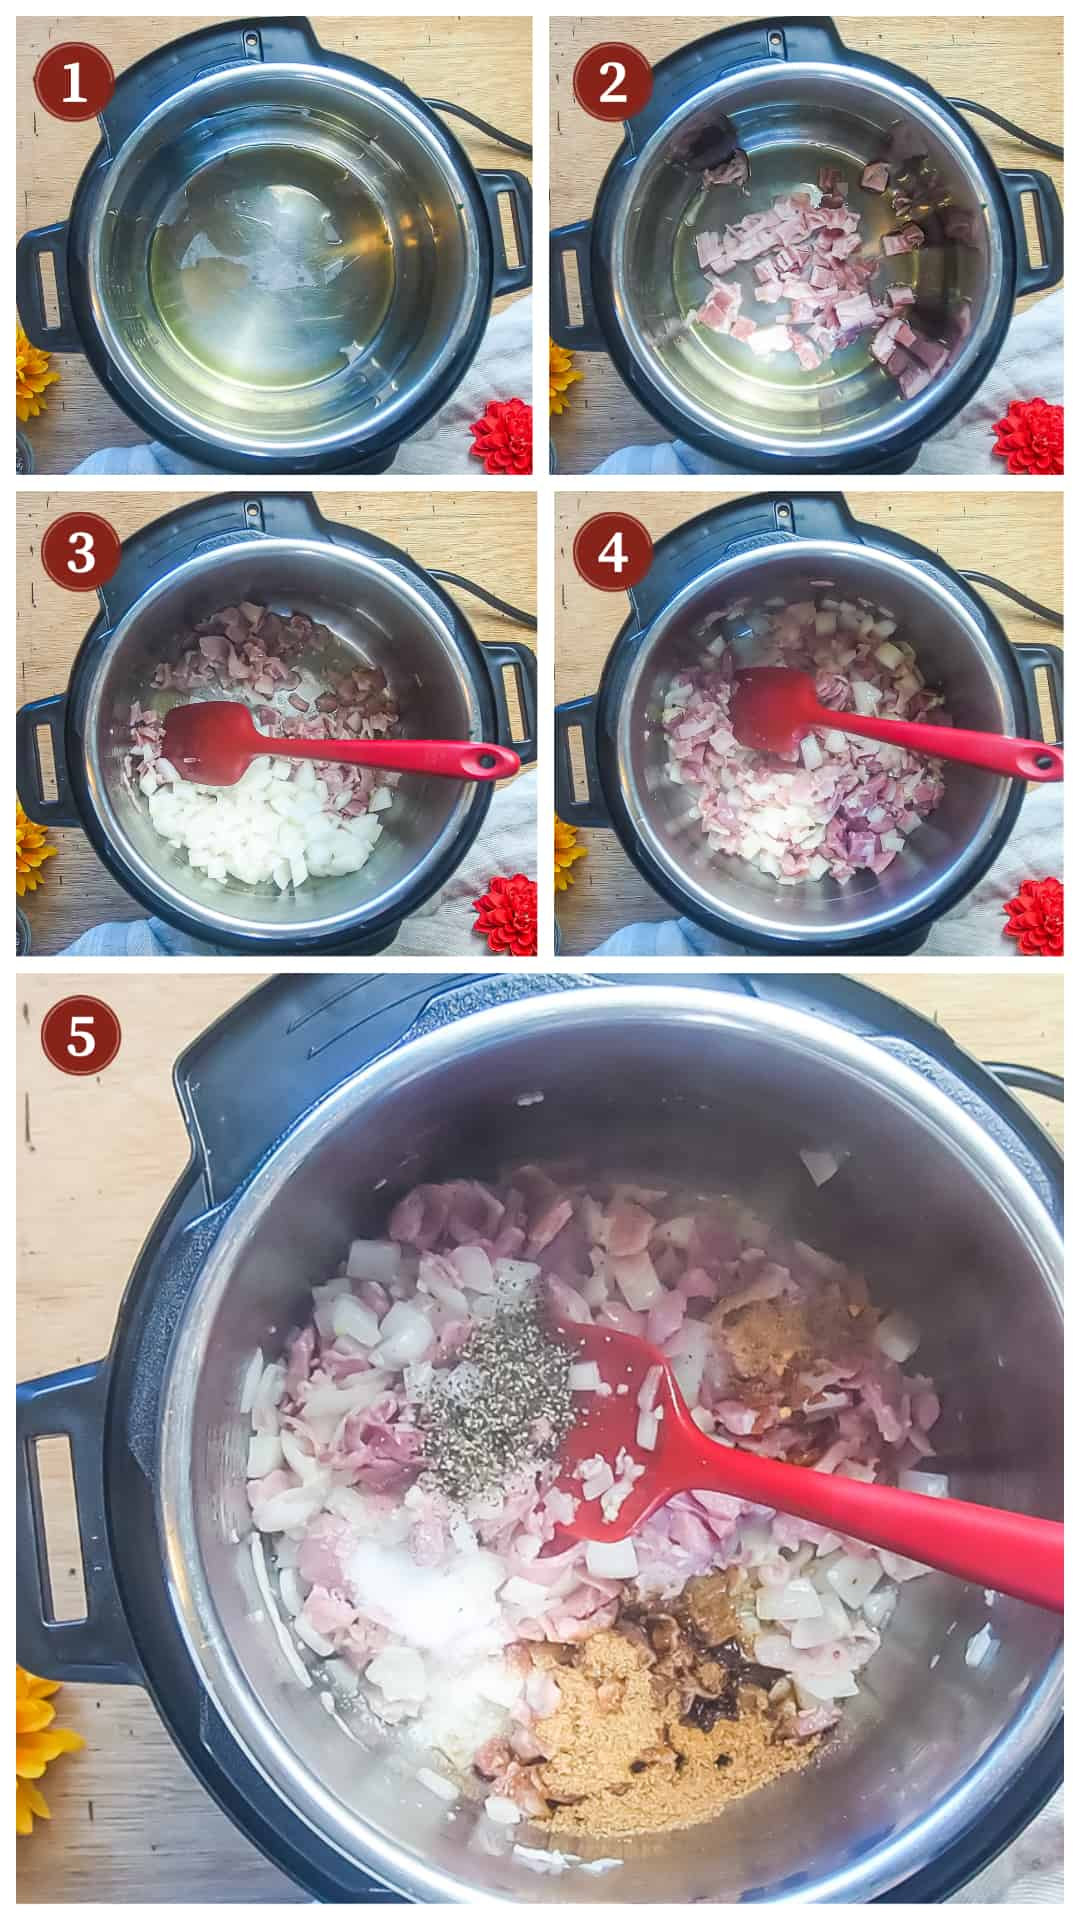 a collage of images showing the process of making collard greens in an instant pot, steps 1 - 5